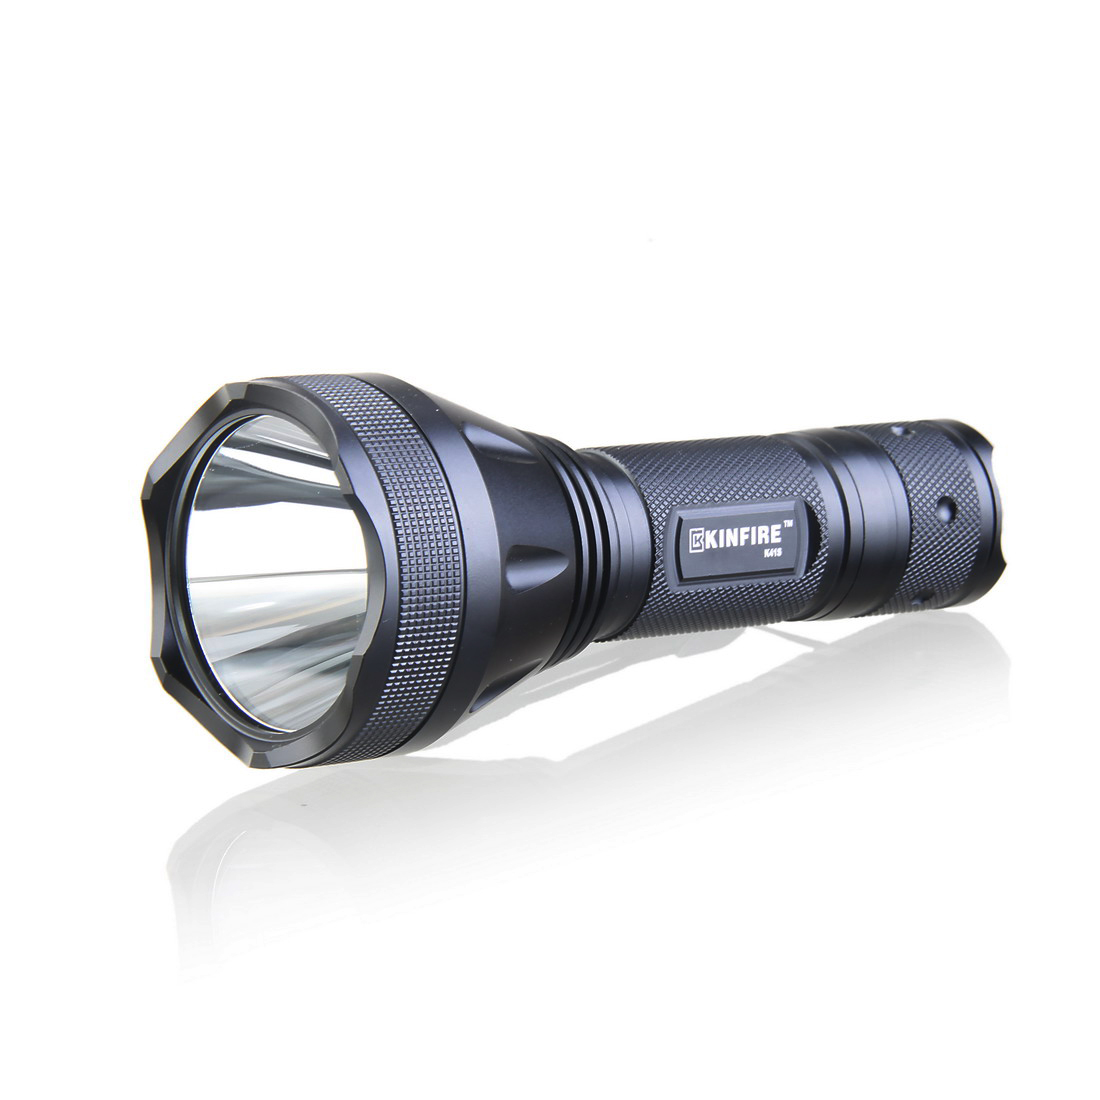 super bright led flashlight,led flashlight,led led useful lights,led torch